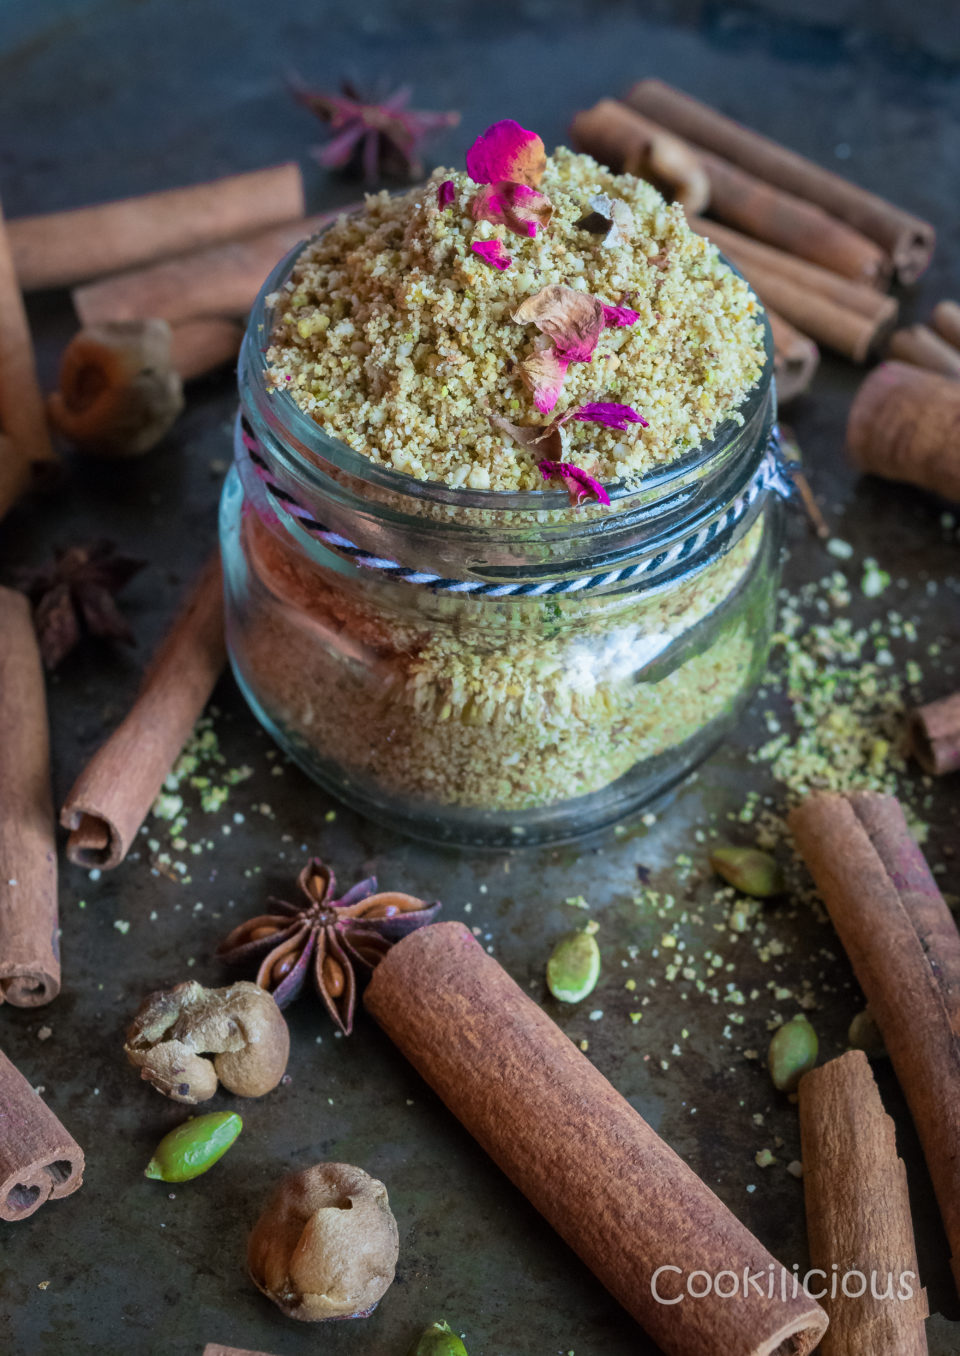 A glass jar filled with milk masala surrounded by cinnamon sticks